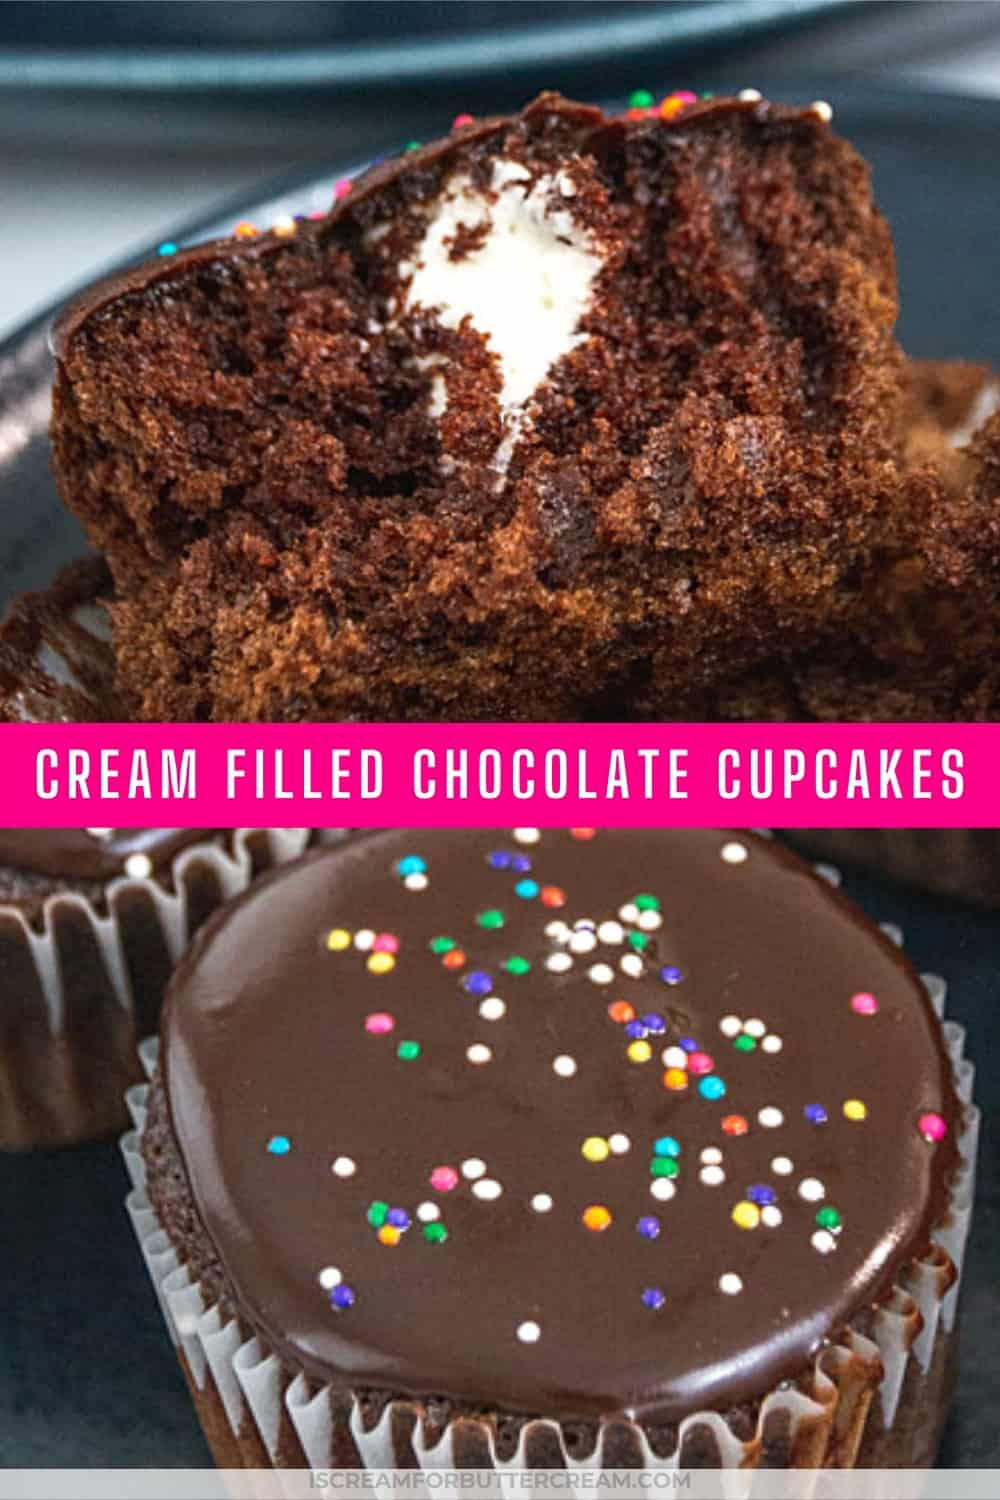 pic of chocolate cupcakes with one cut open and text overlay pin graphic